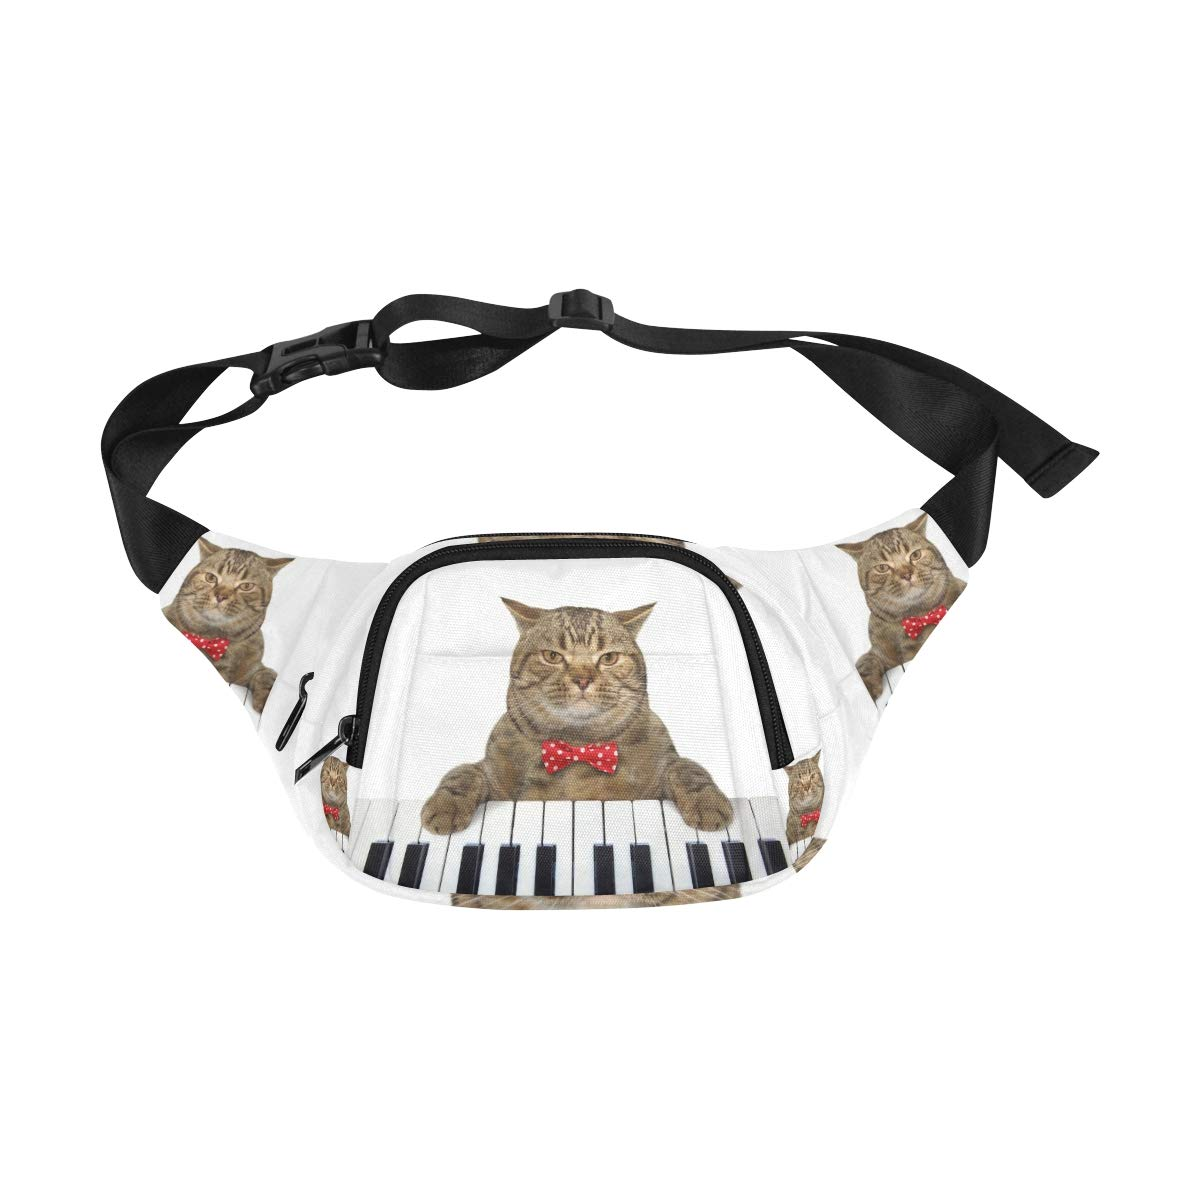 A Cute Cat Playing The Piano Fenny Packs Waist Bags Adjustable Belt Waterproof Nylon Travel Running Sport Vacation Party For Men Women Boys Girls Kids